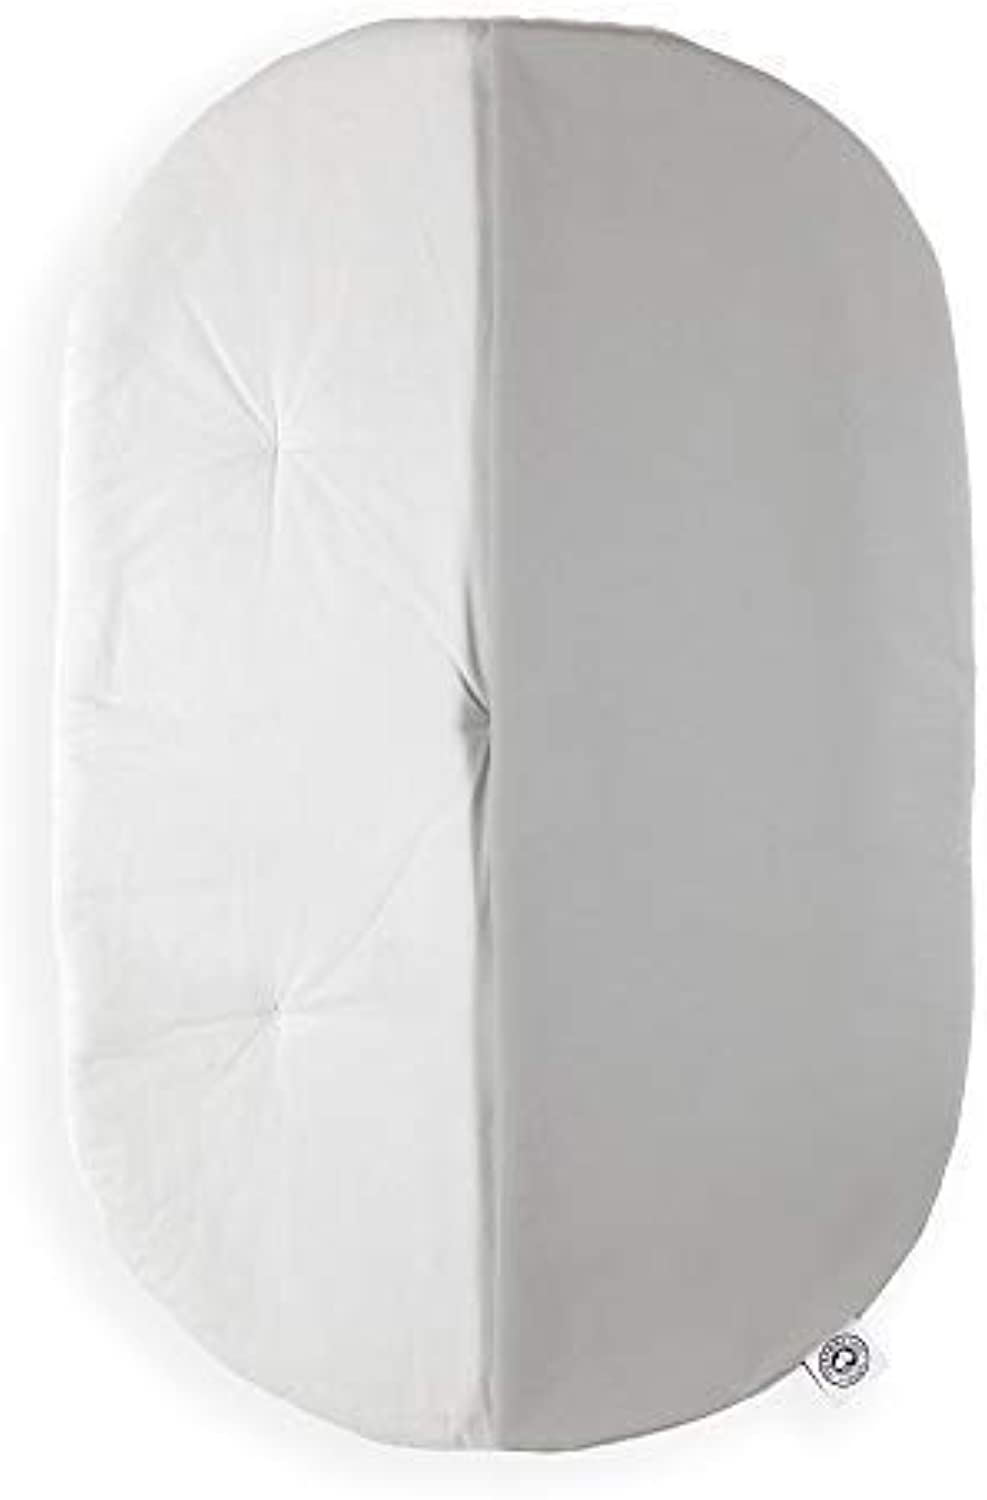 The Topponcino Company   Original Topponcino (Grey)   Montessori-Inspired Infant Security Pillow and Baby Lounger, Natural Cotton